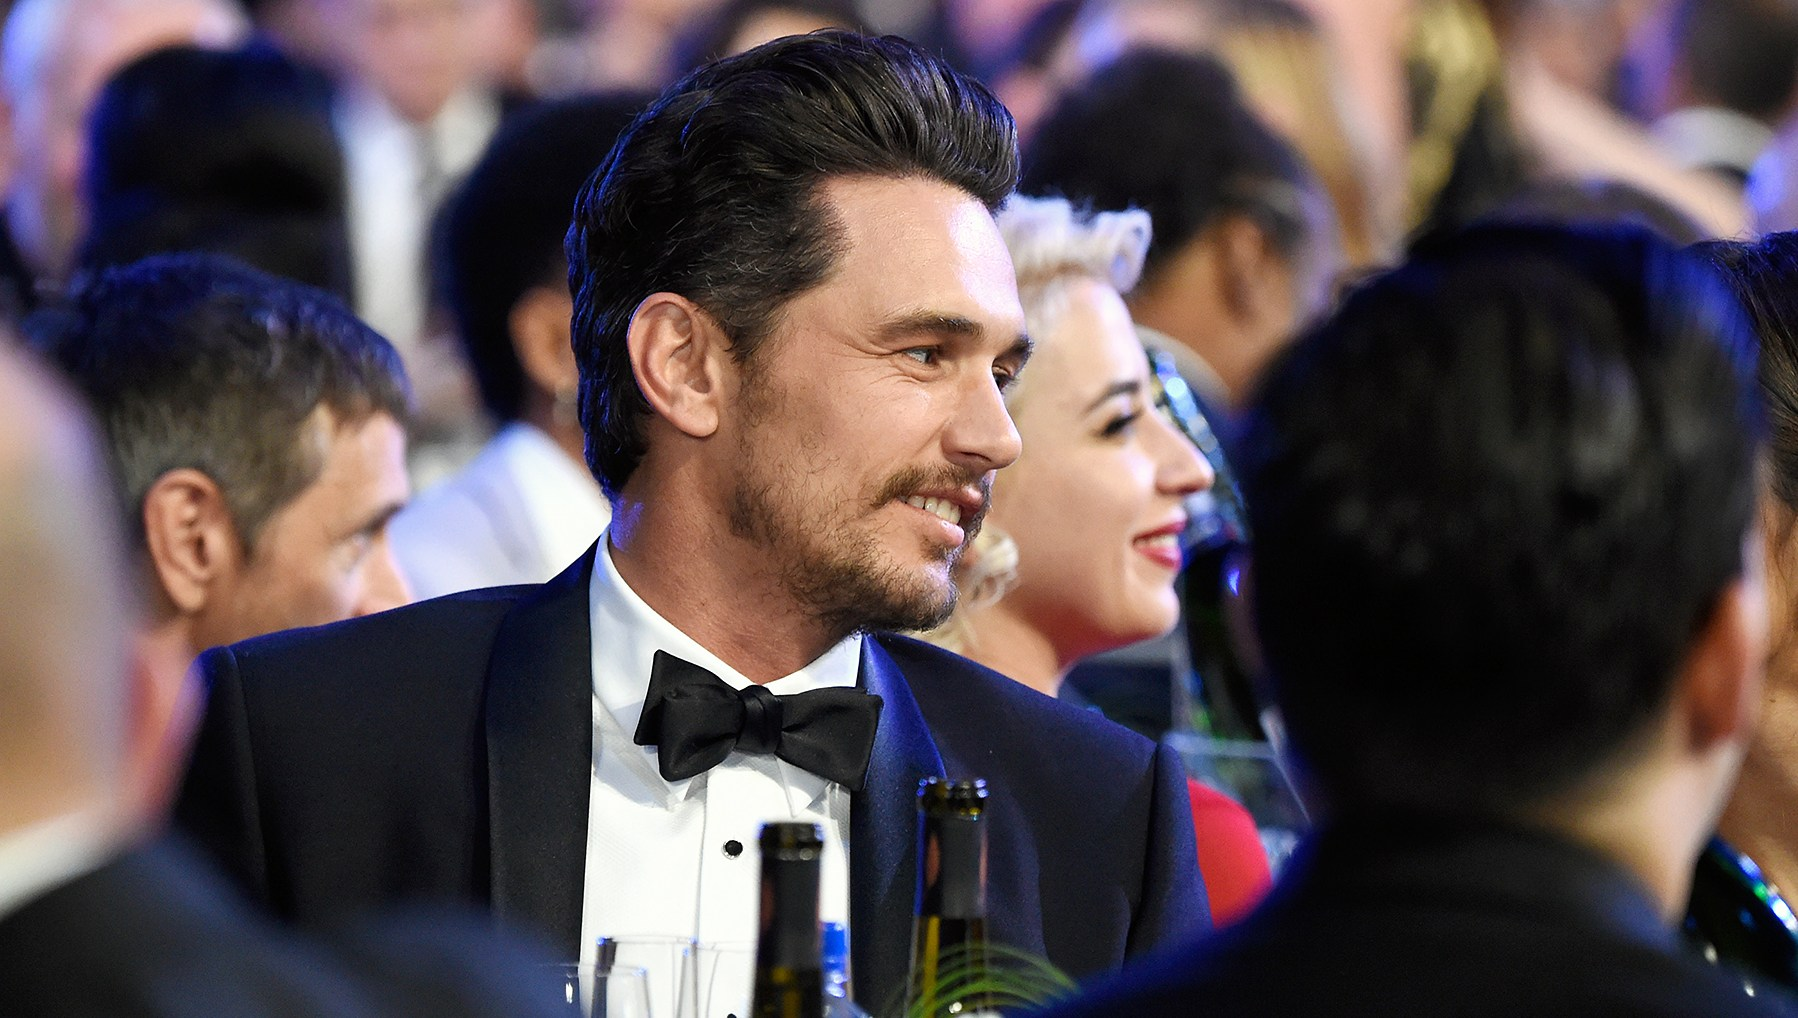 James Franco SAGs 2018